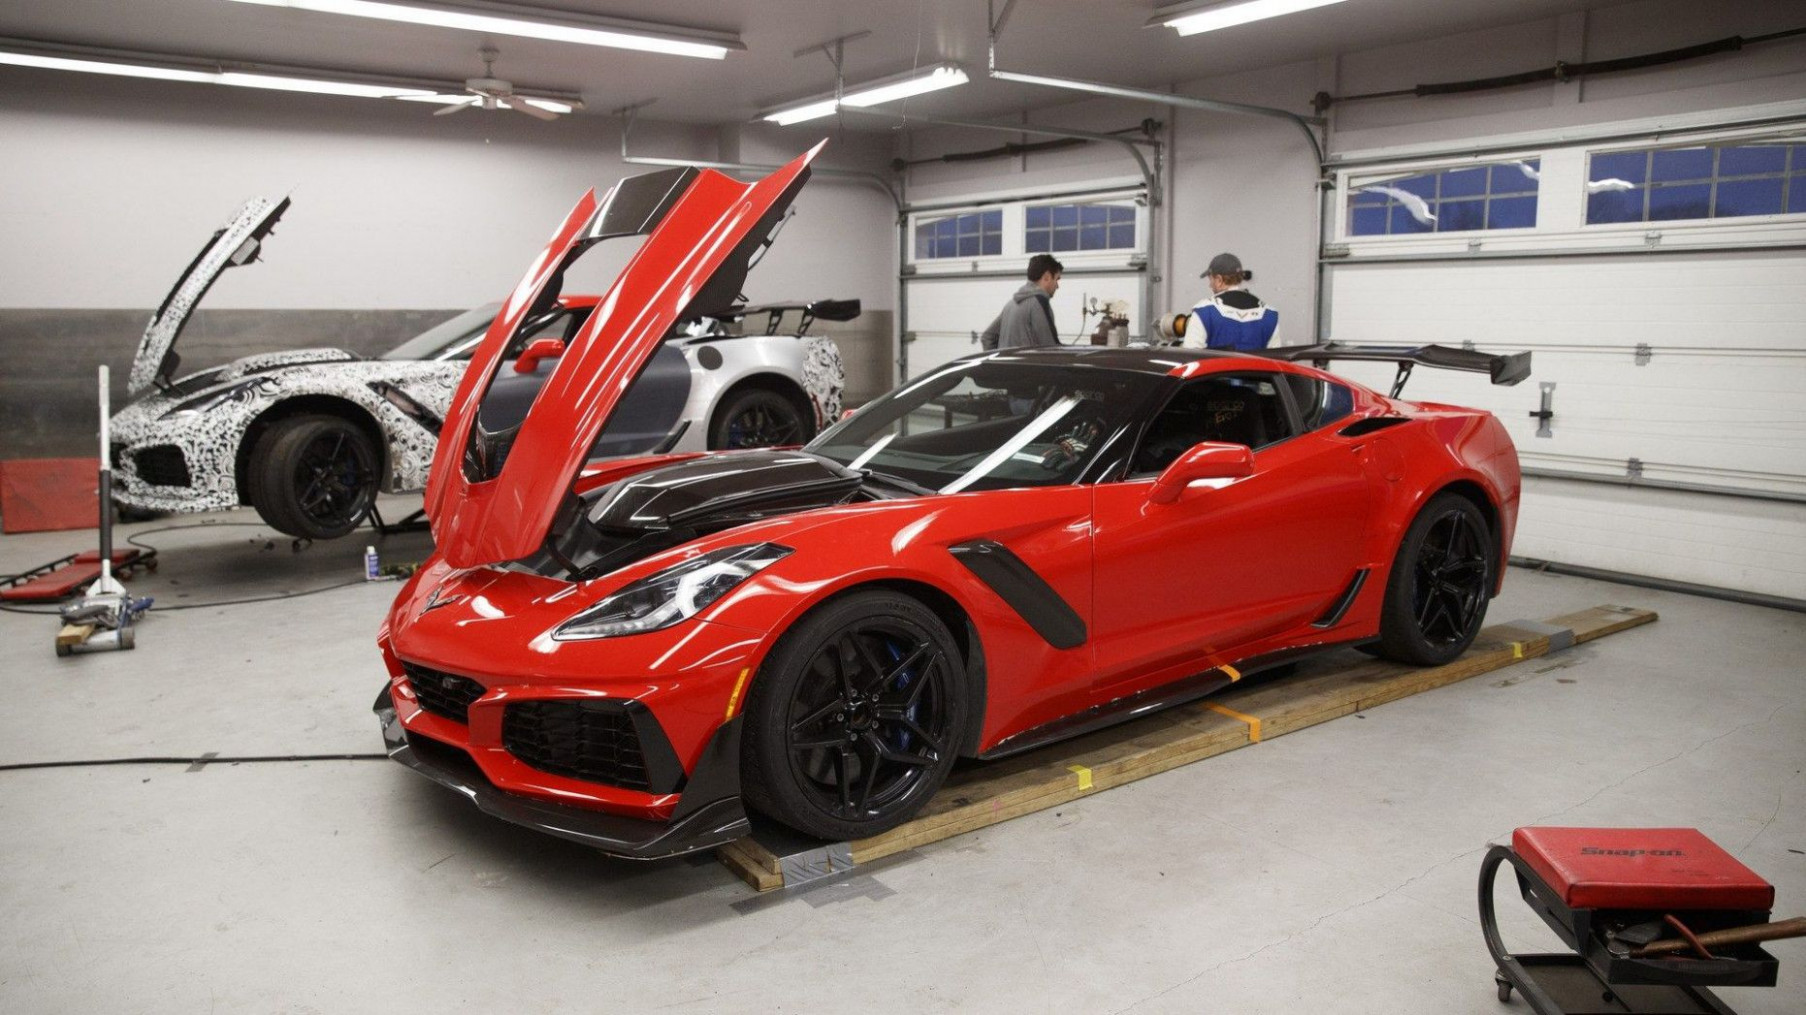 8 Zr8 Vs Ford Gt Spesification | Corvette zr8, Ford gt, Corvette - 2020 zr1 vs ford gt